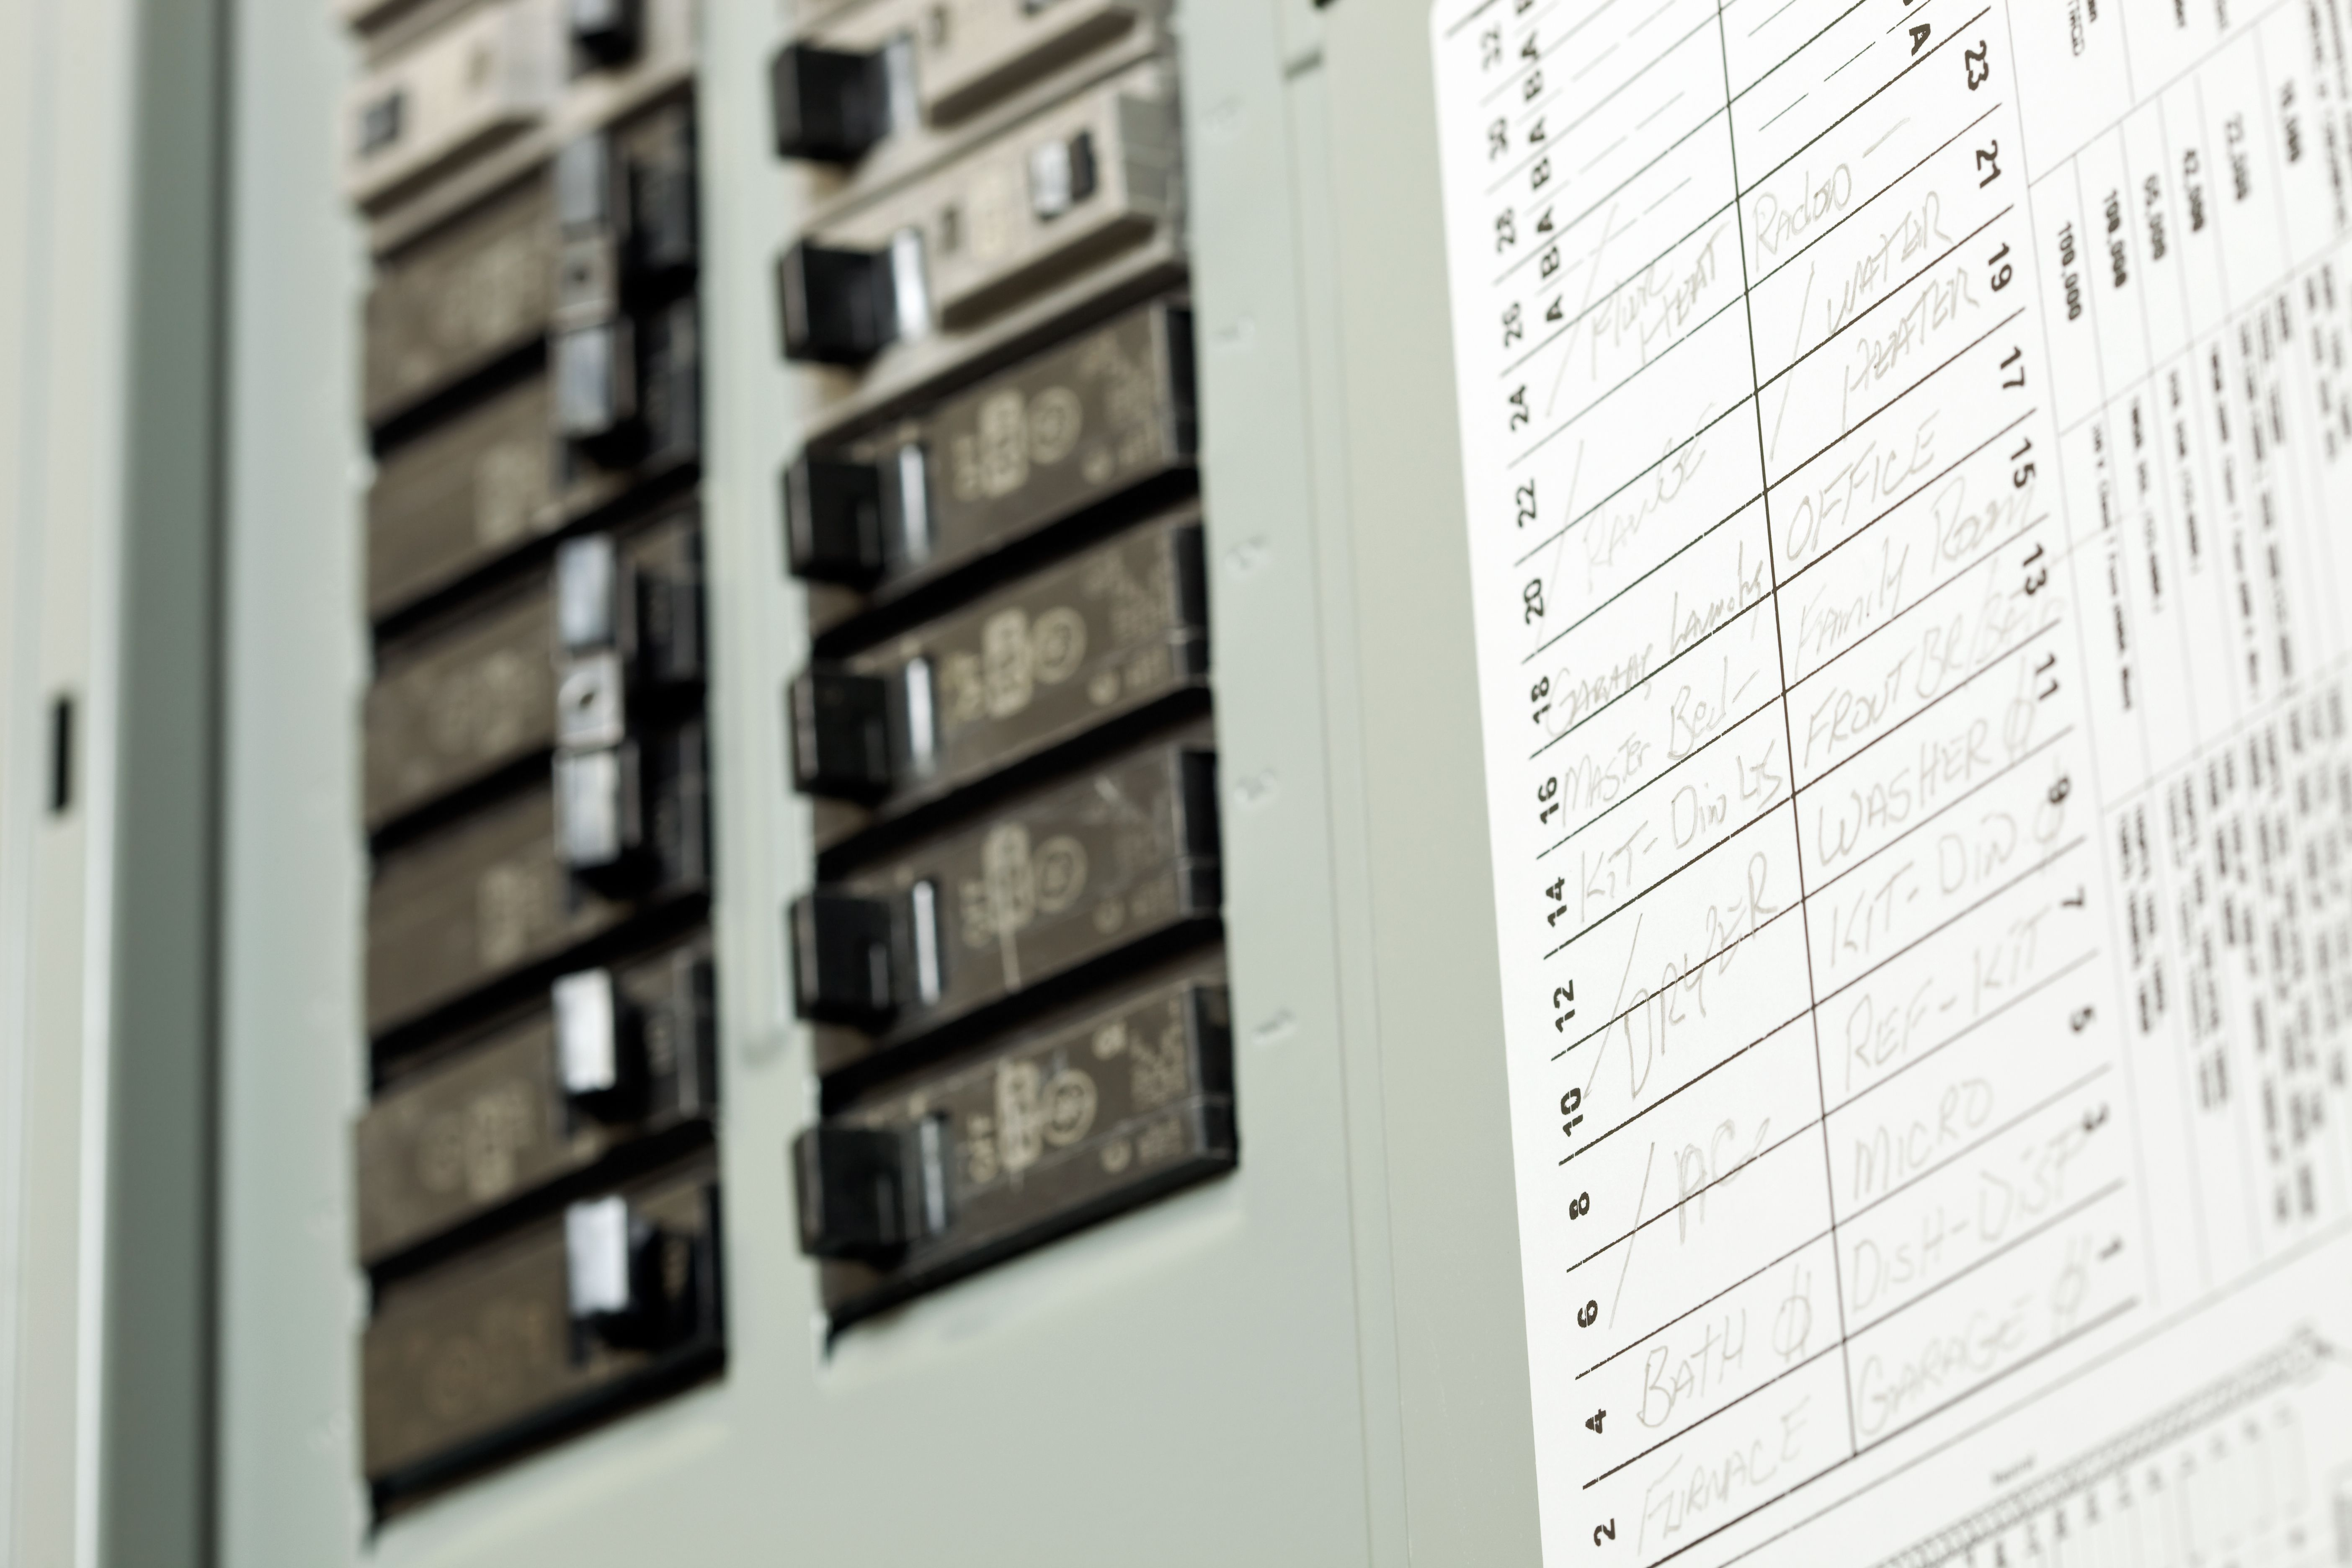 How To Label Circuit Breakers So You Know Which One To Shut Off